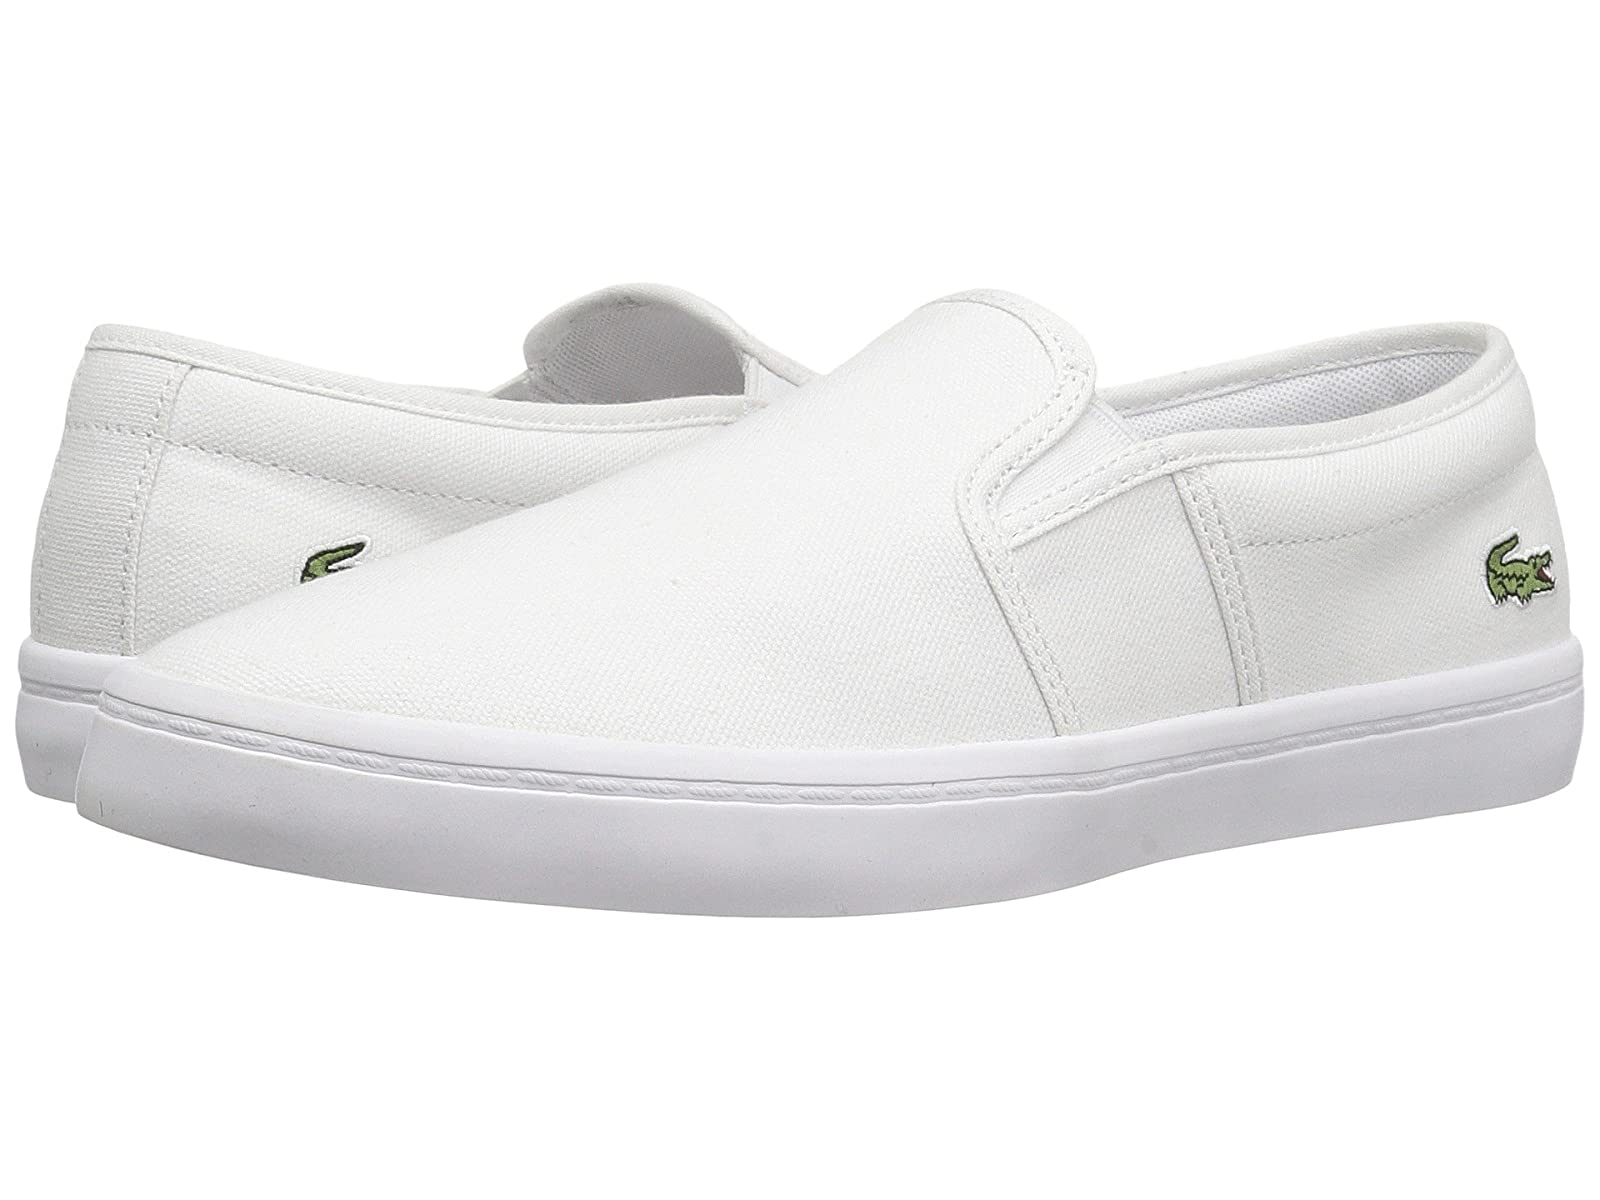 Lacoste Gazon BL 2 CanvasAtmospheric grades have affordable shoes